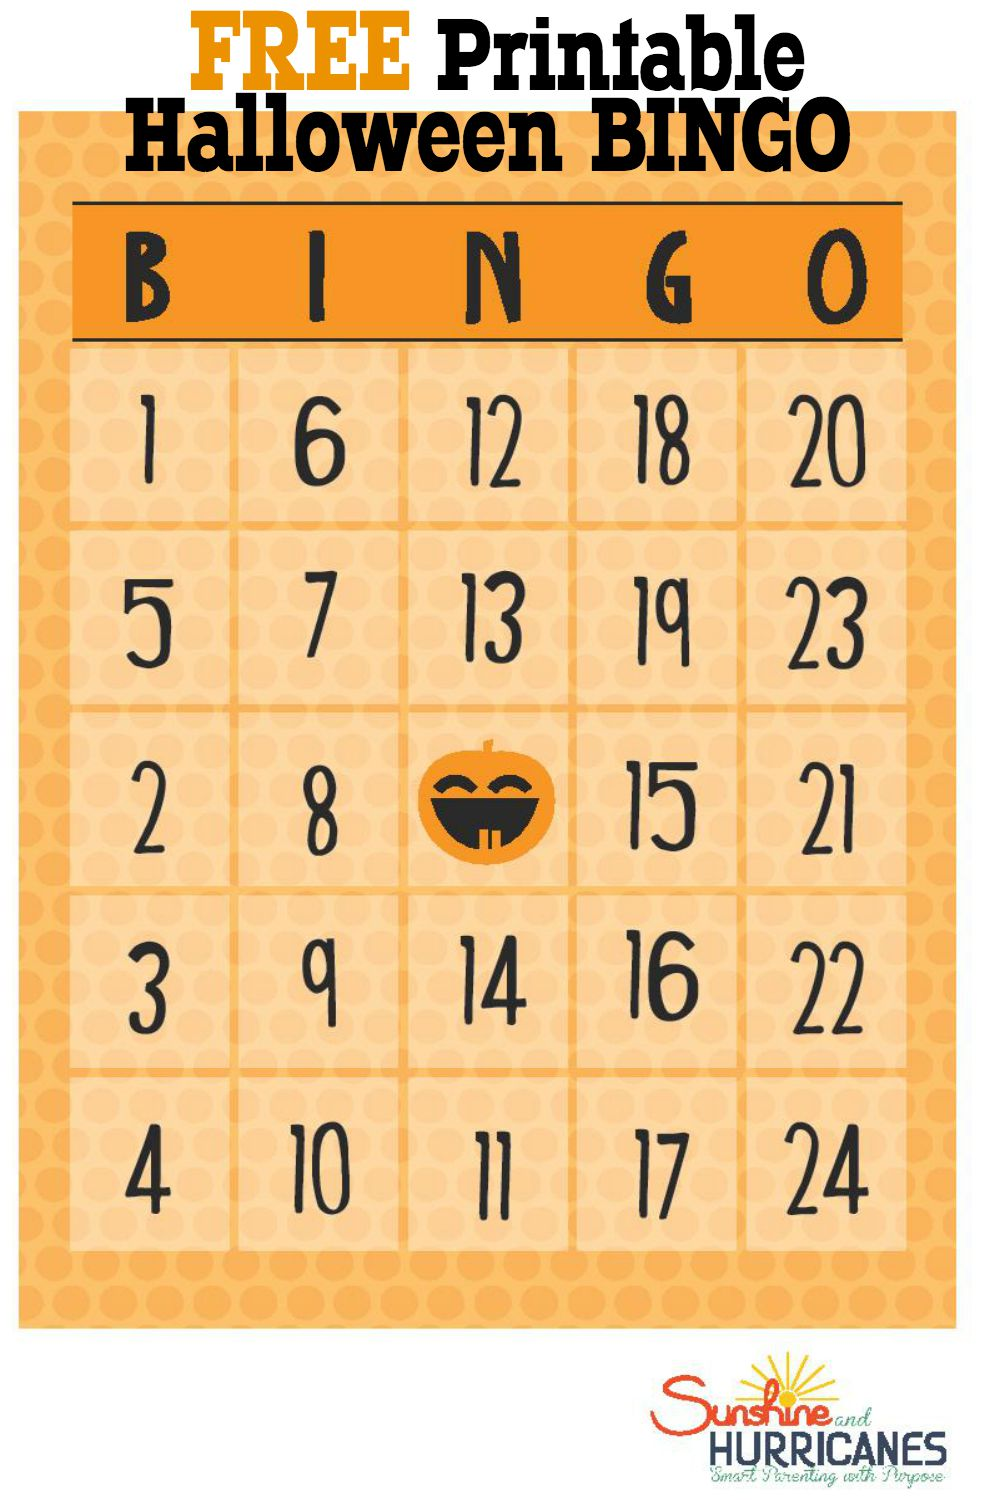 Adaptable image intended for number bingo printable